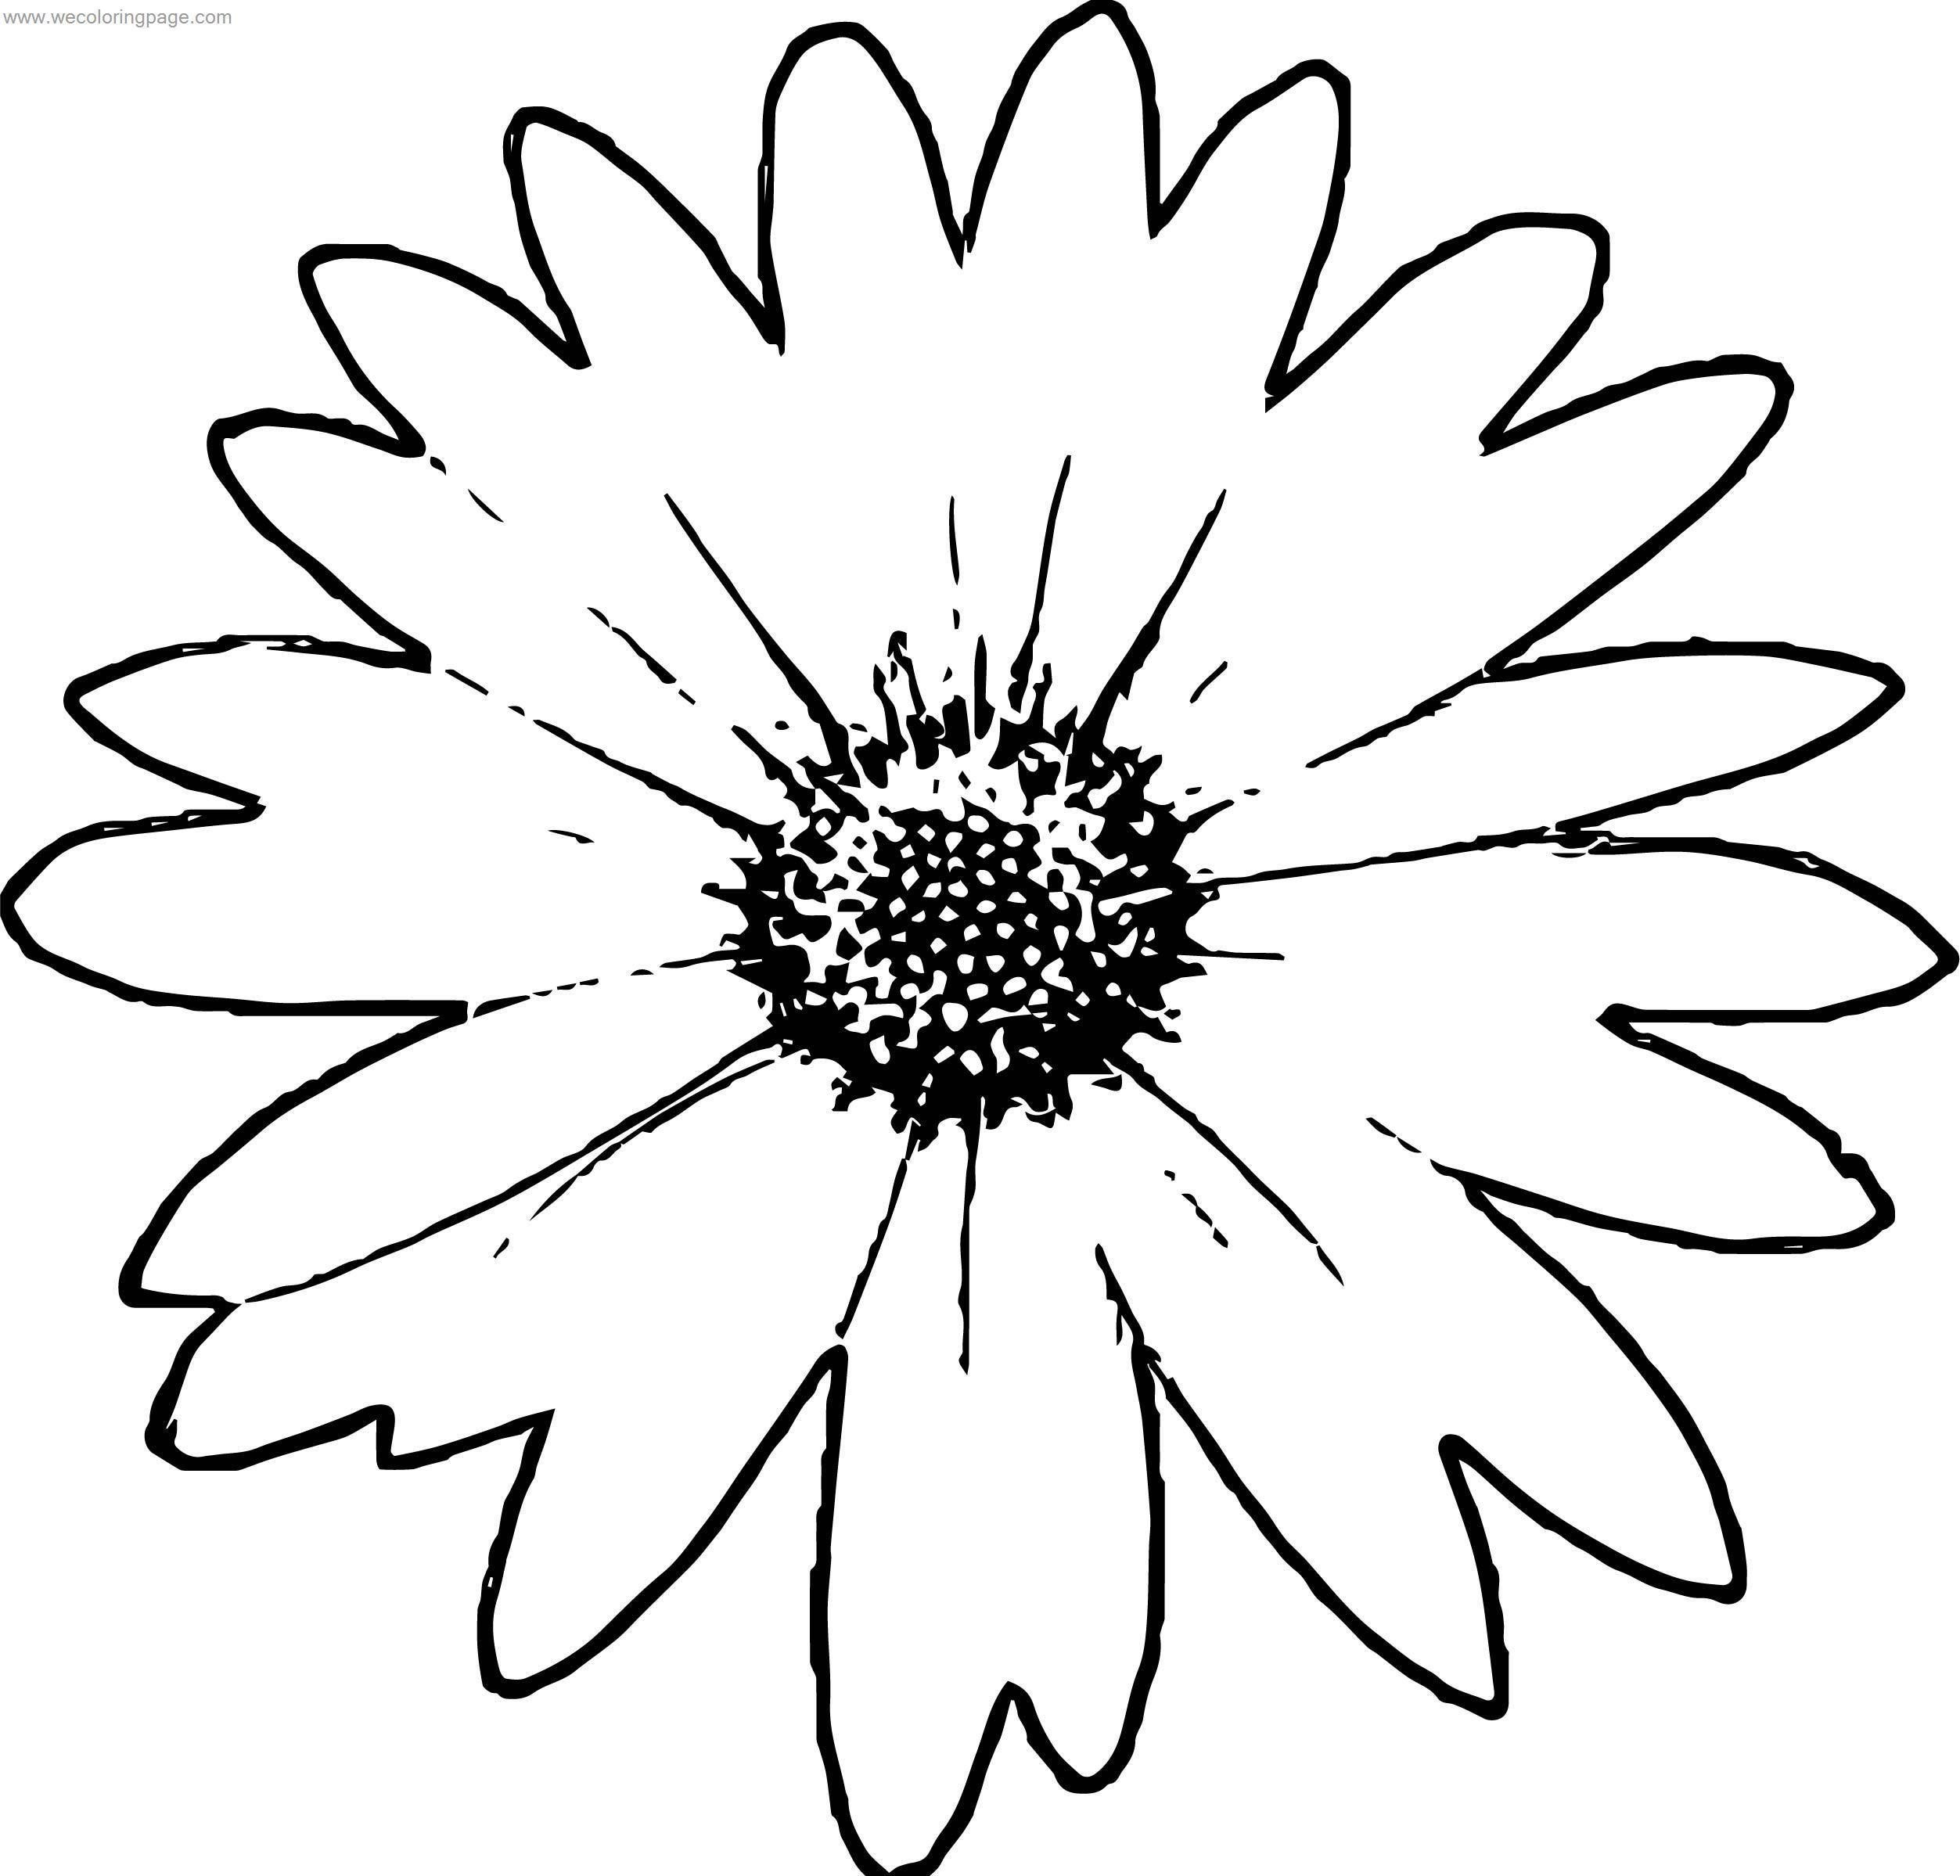 One Daisy Flower Coloring Page Wecoloringpage Com